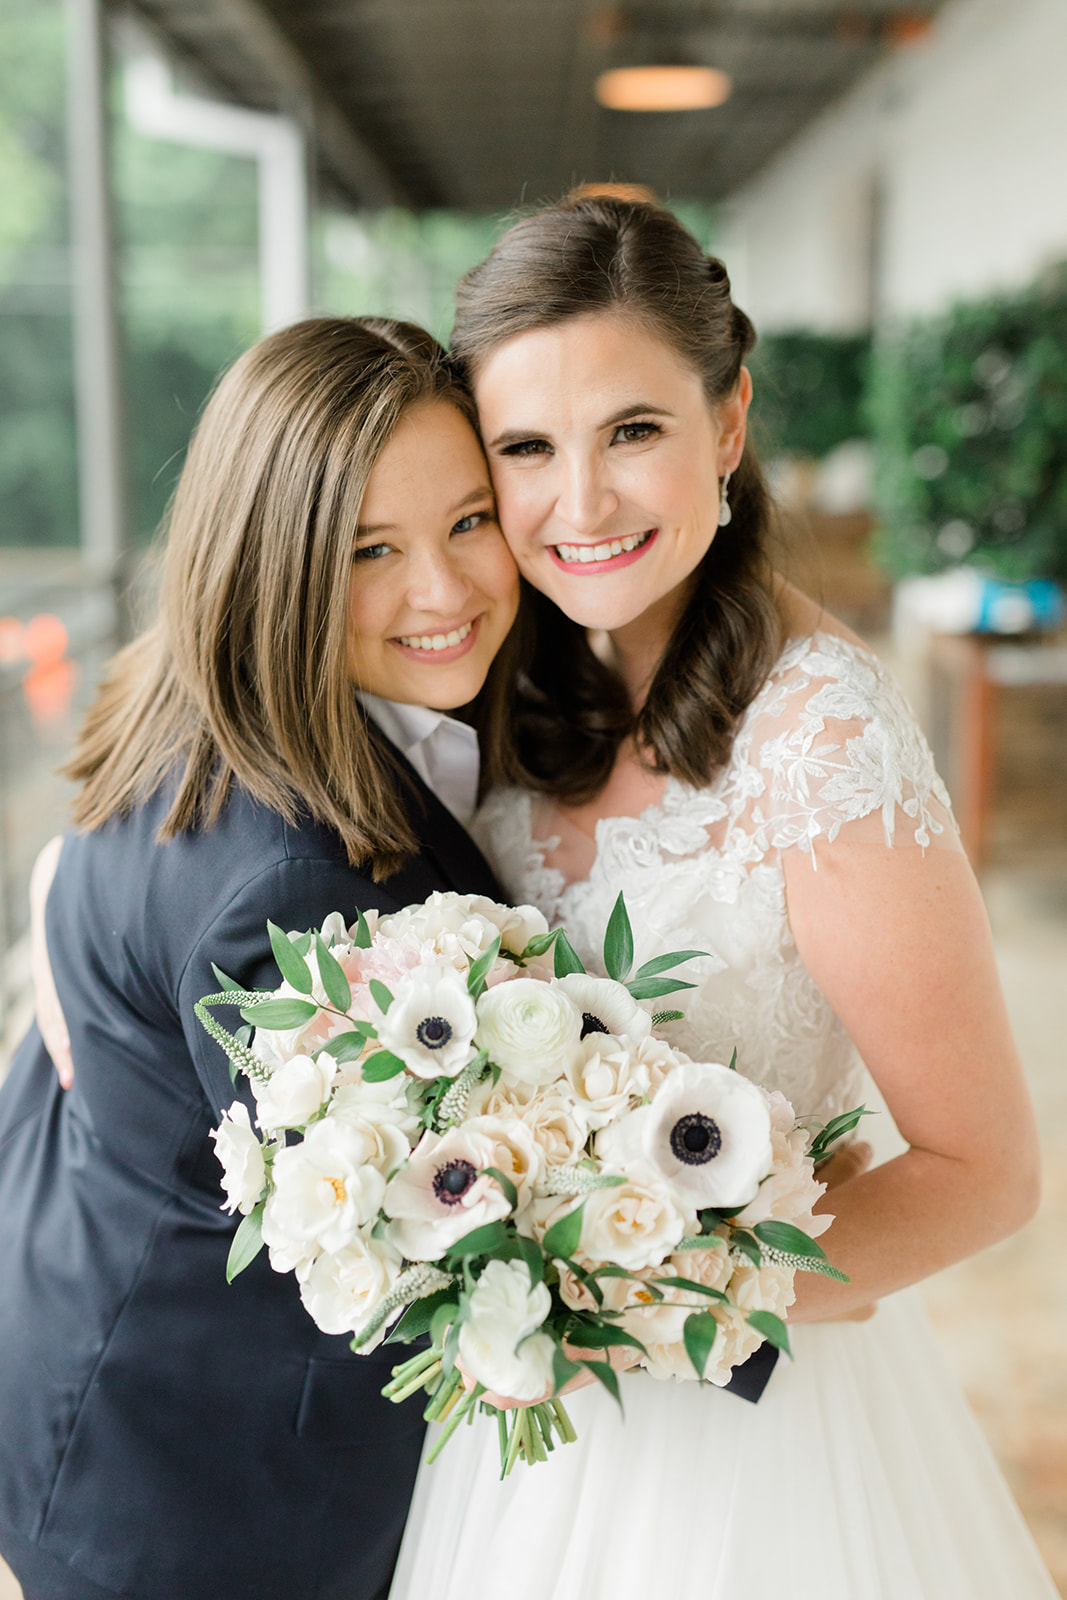 Jess & Cate - The Stave Room